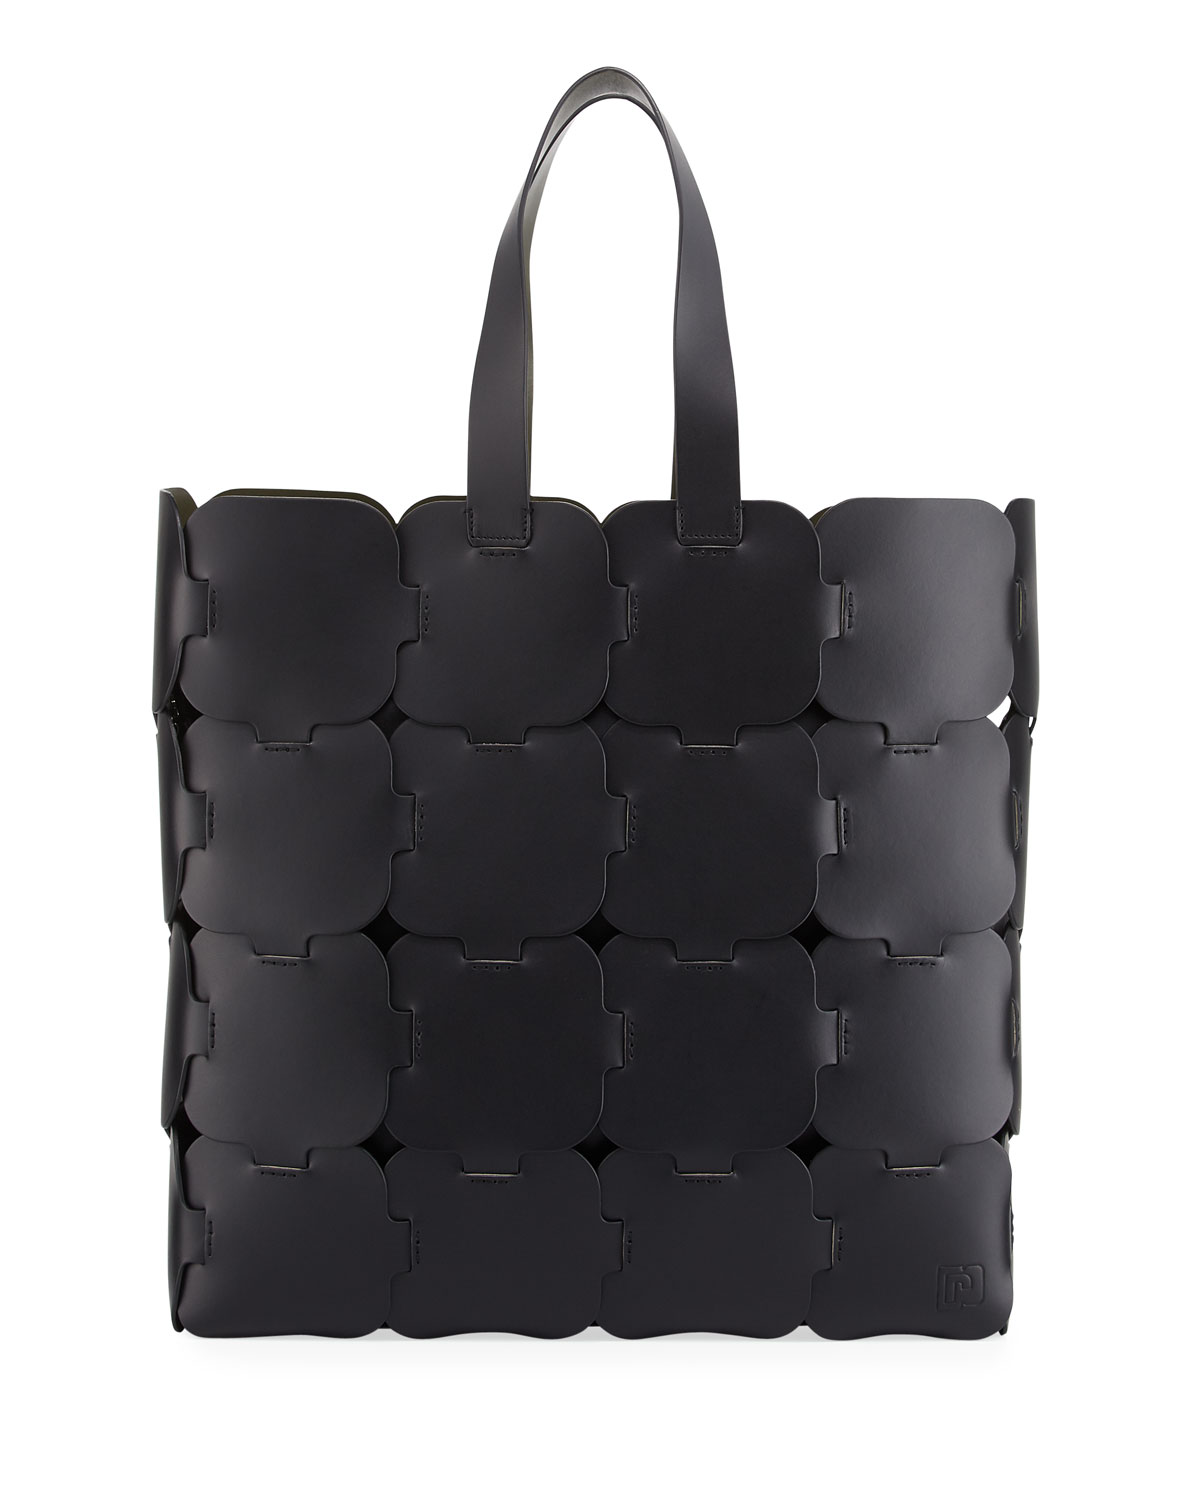 3f4993f2b342 Quick Look. Paco Rabanne · Cabas Large Leather Tote Bag